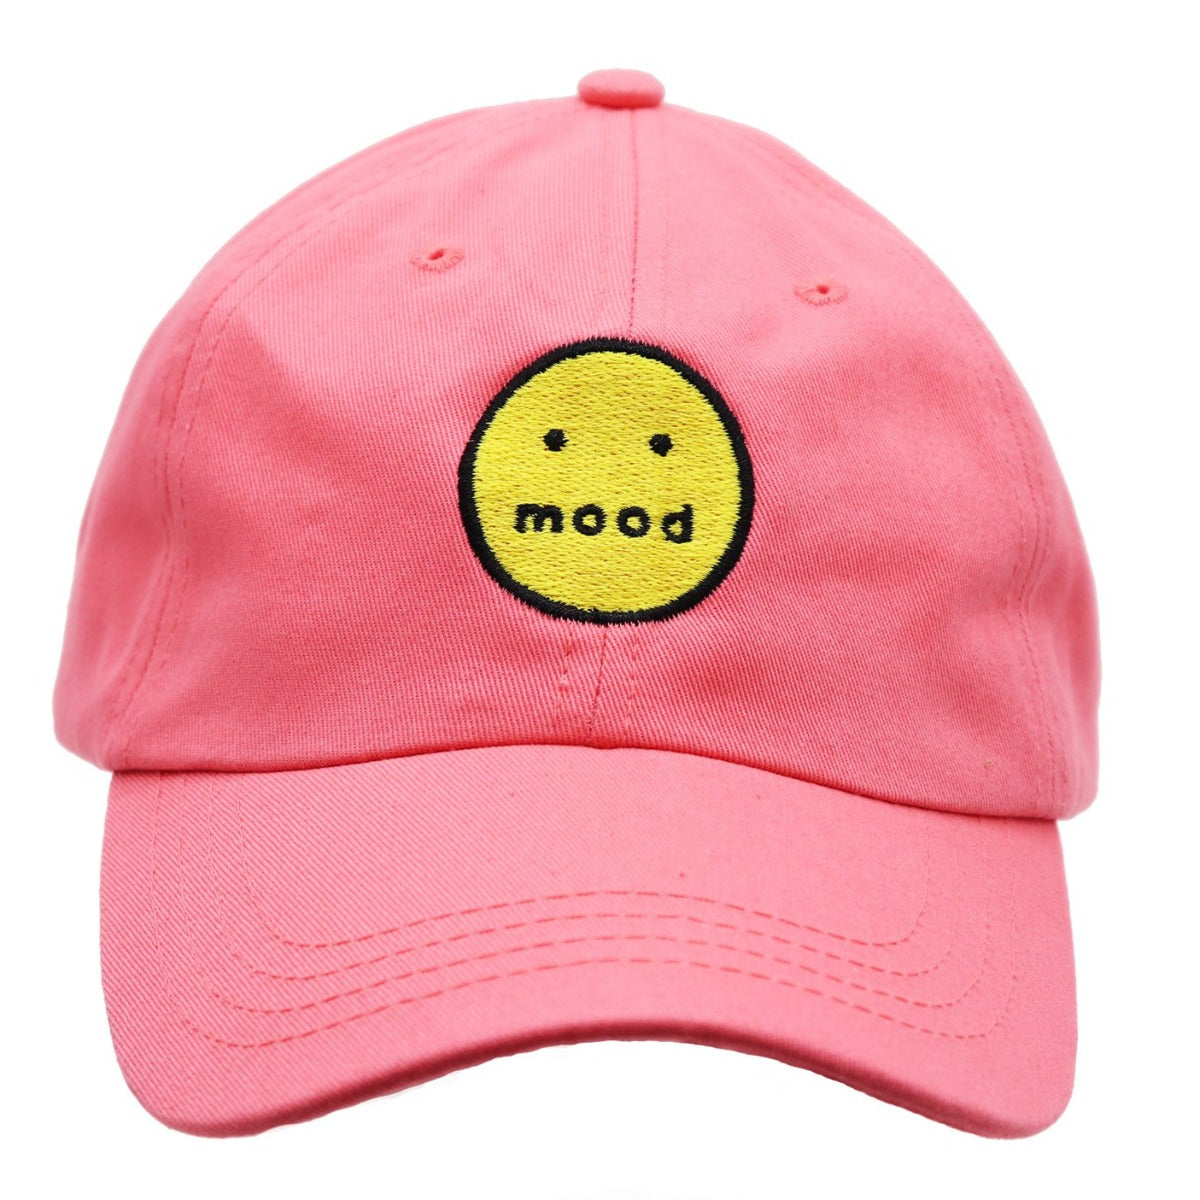 Solid grapefruit color dad hat with an embroidered yellow smiley face outlined in black and the word mood instead of the mouth